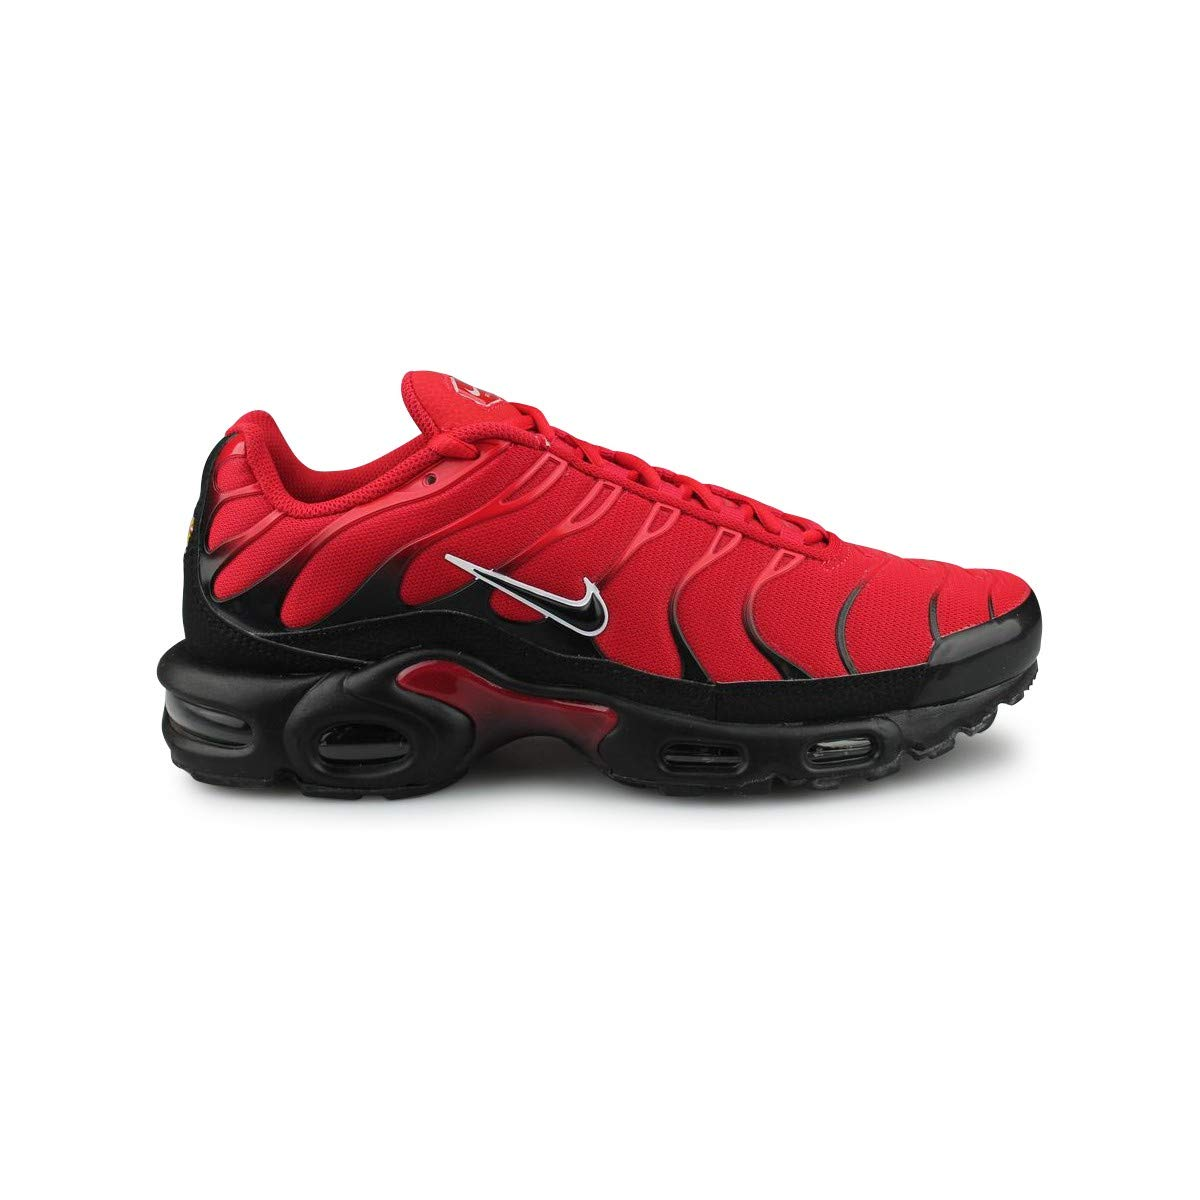 huge selection of 54071 90bcf Amazon.com | Nike Men's Air Max Plus Leather Casual Shoes ...